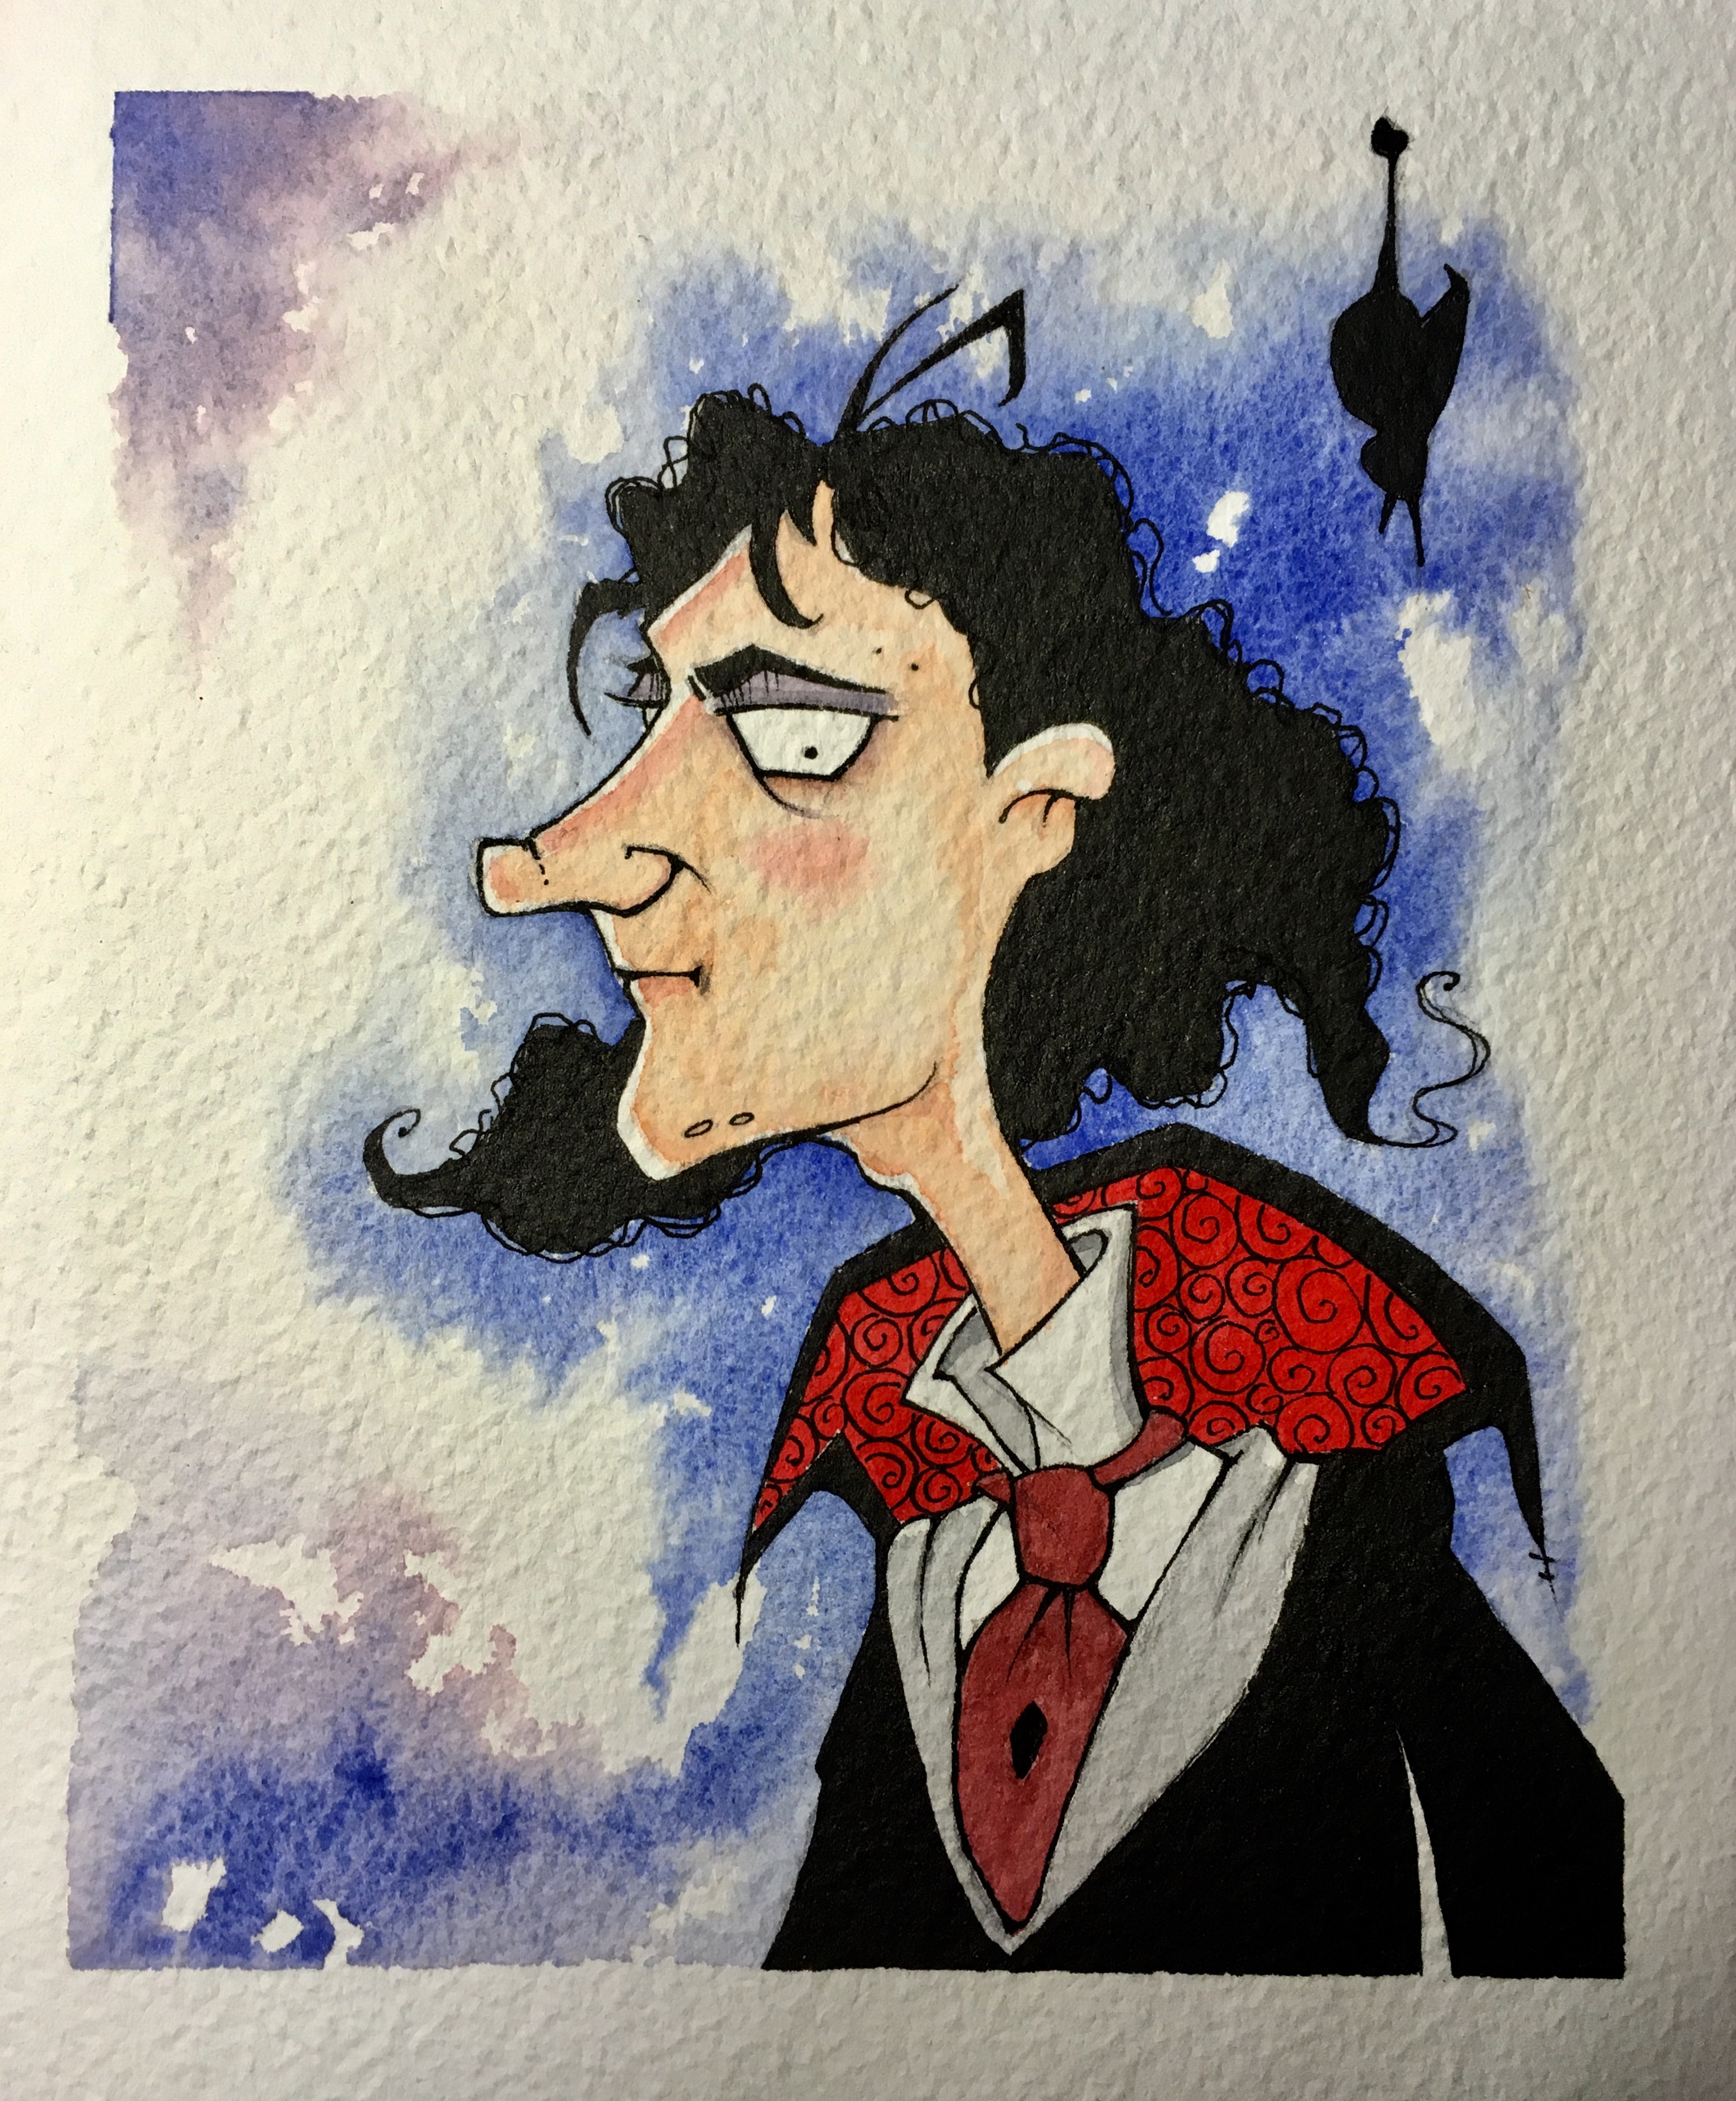 Young Drac side view